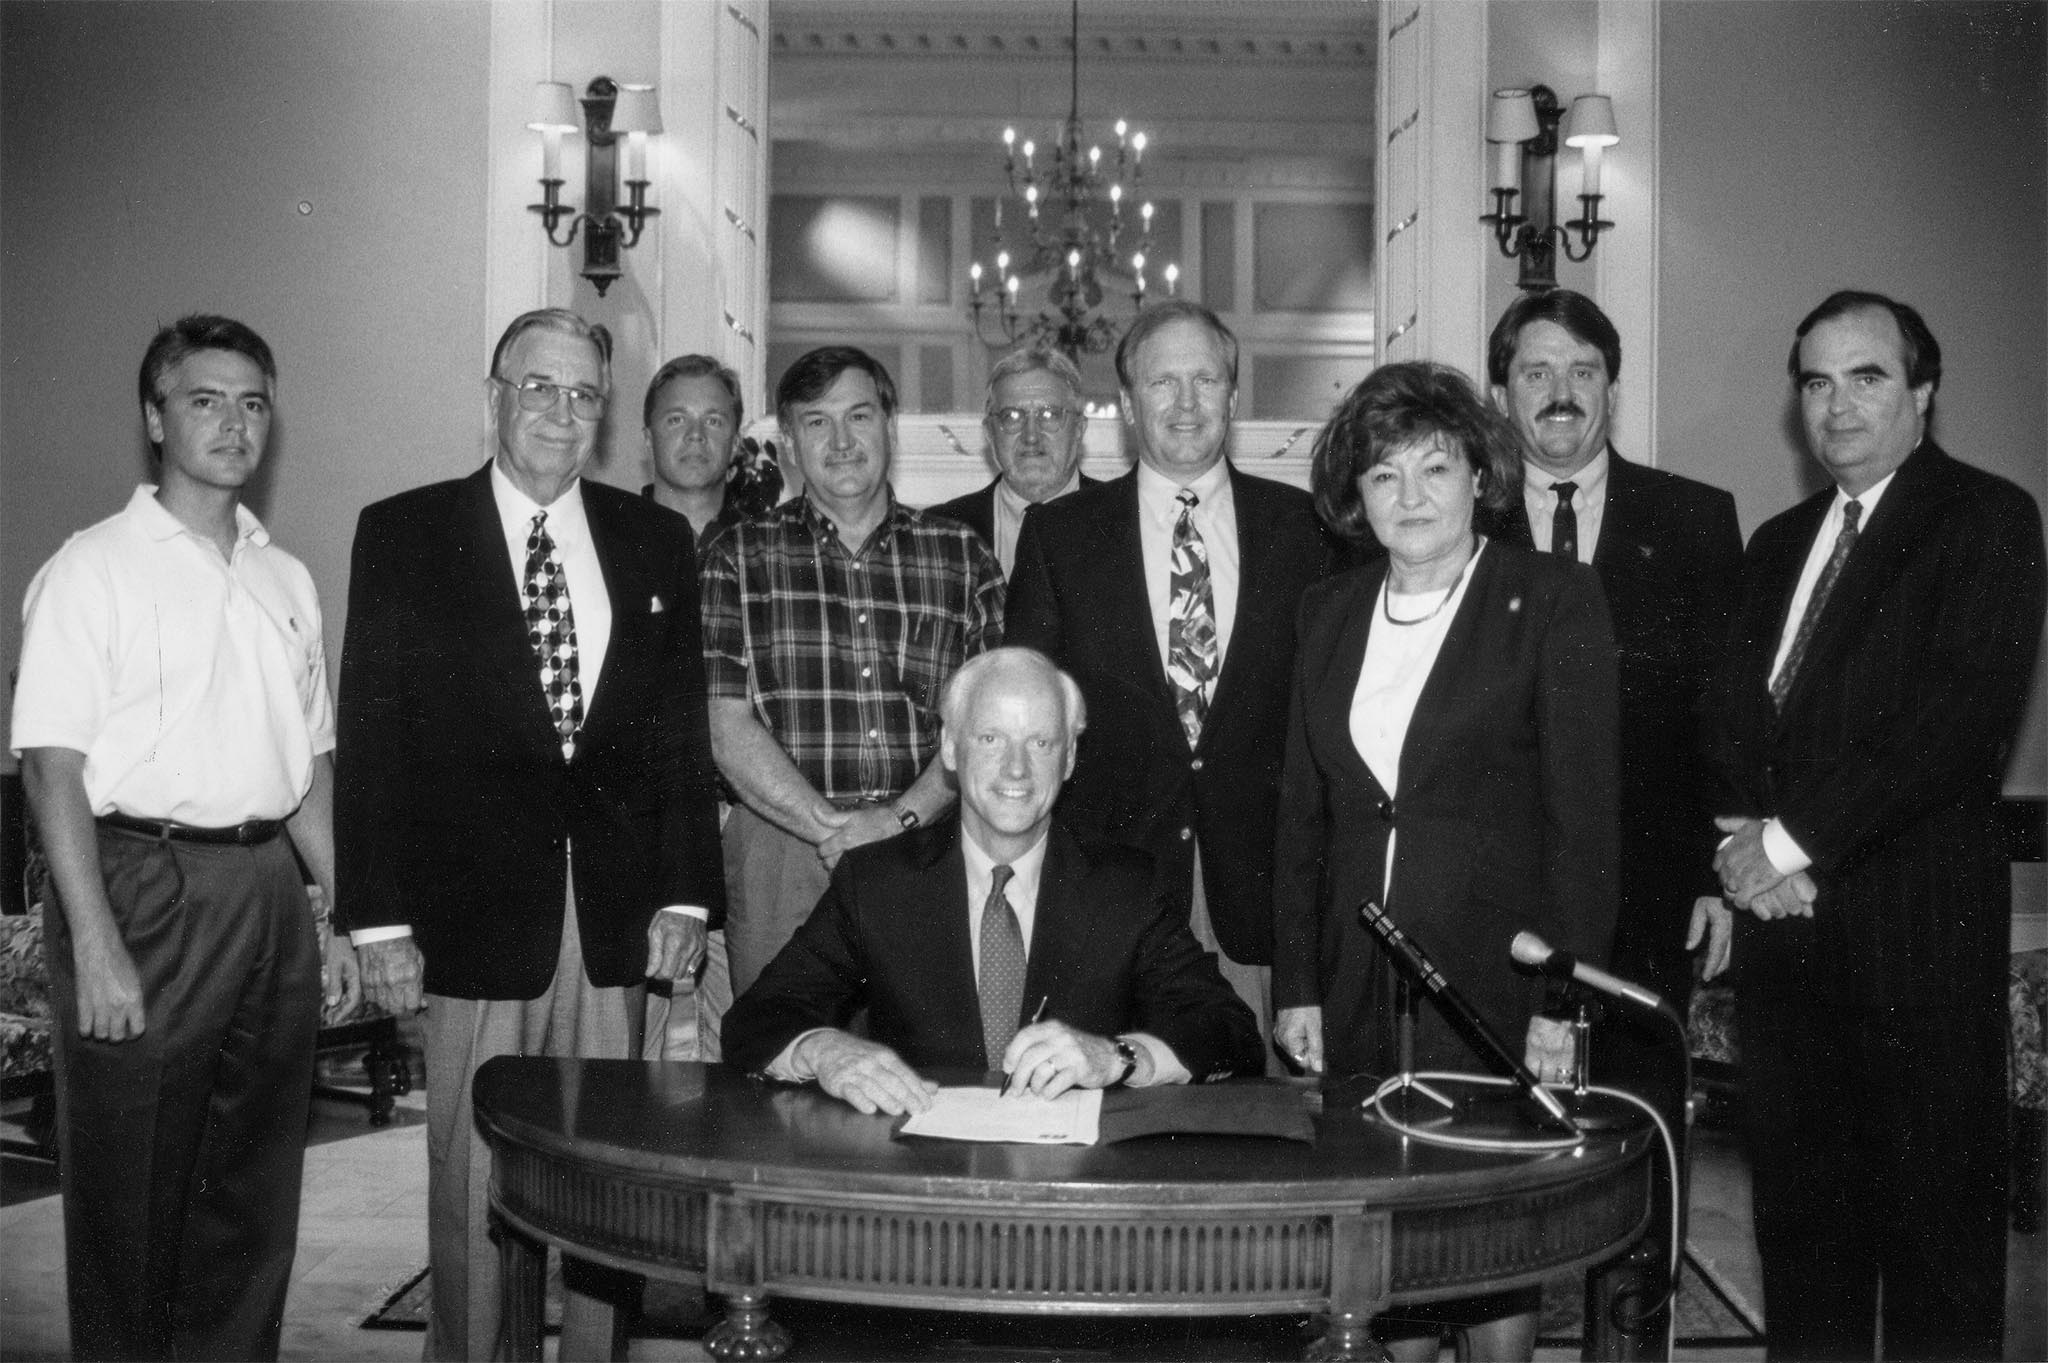 This photo was taken June 12, 1998, as Gov. Frank Keating's signature on Oklahoma's estate tax reform bill drew a large crowd of interested witnesses. Attending the ceremony in the Oklahoma State Capitol's Blue Room were (left to right) OKFB General Counsel Richard Herren, OKFB President Jack Givens, OKFB Executive Director Matt Wilson, Mason Mungle, Rep. Larry Ferguson, Sen. Owen Laughlin, Rep. Mary Easley, Agriculture Commissioner Dennis Howard, and Director of State Finance Tom Daxon.